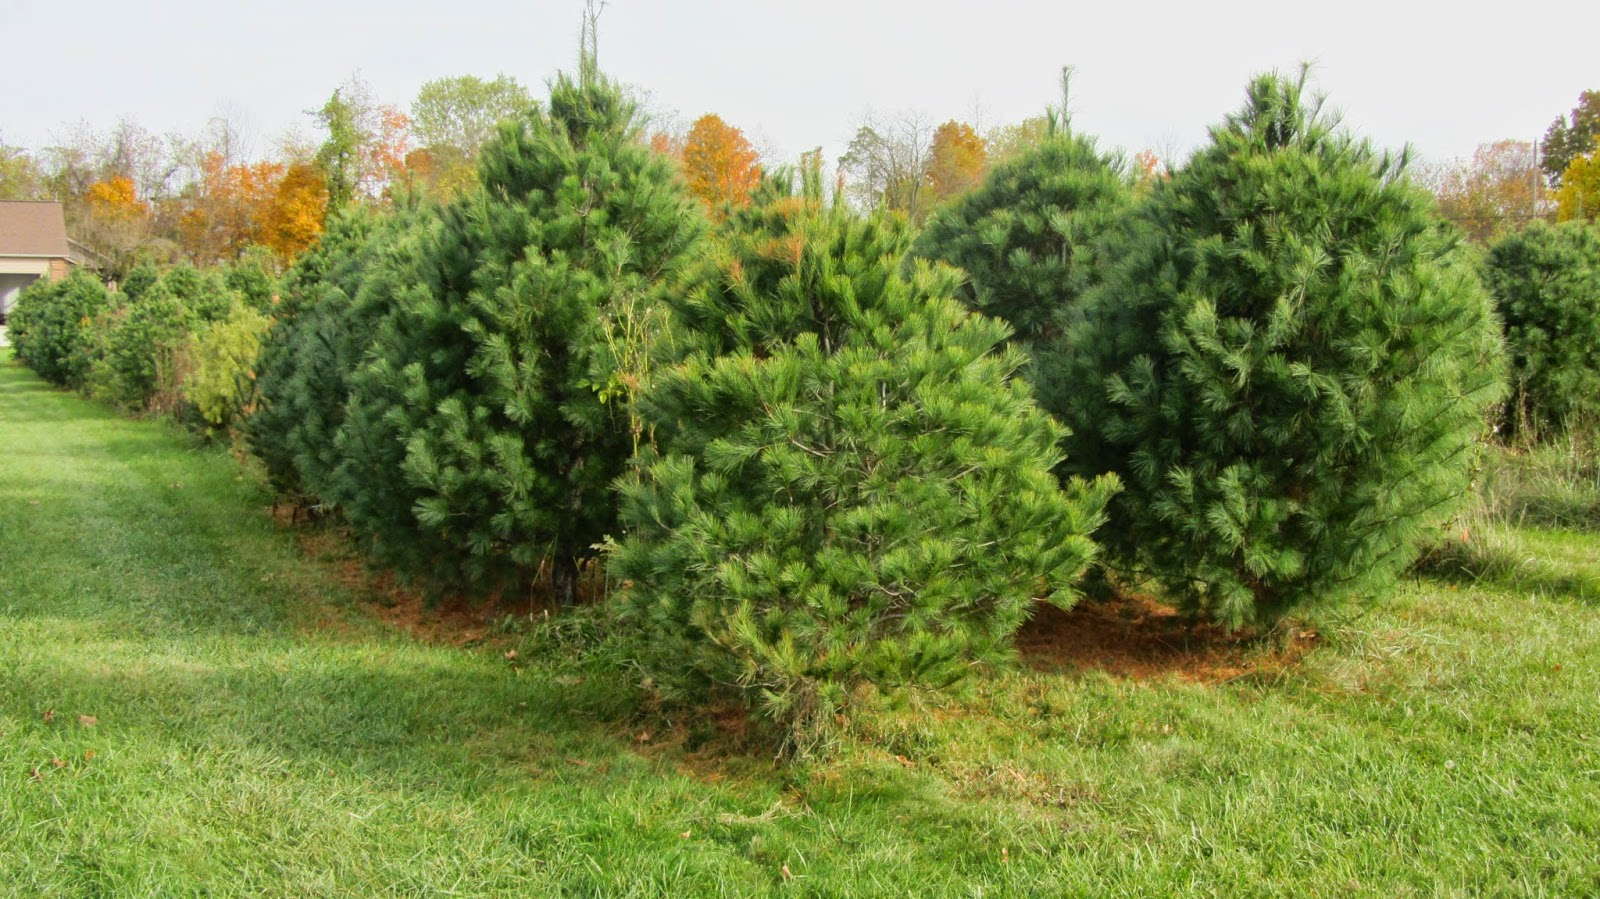 farm to cut your christmas tree farmer glass has been caring for these trees since they were saplings just so you have the perfect tree for your home - Christmas Tree Farming